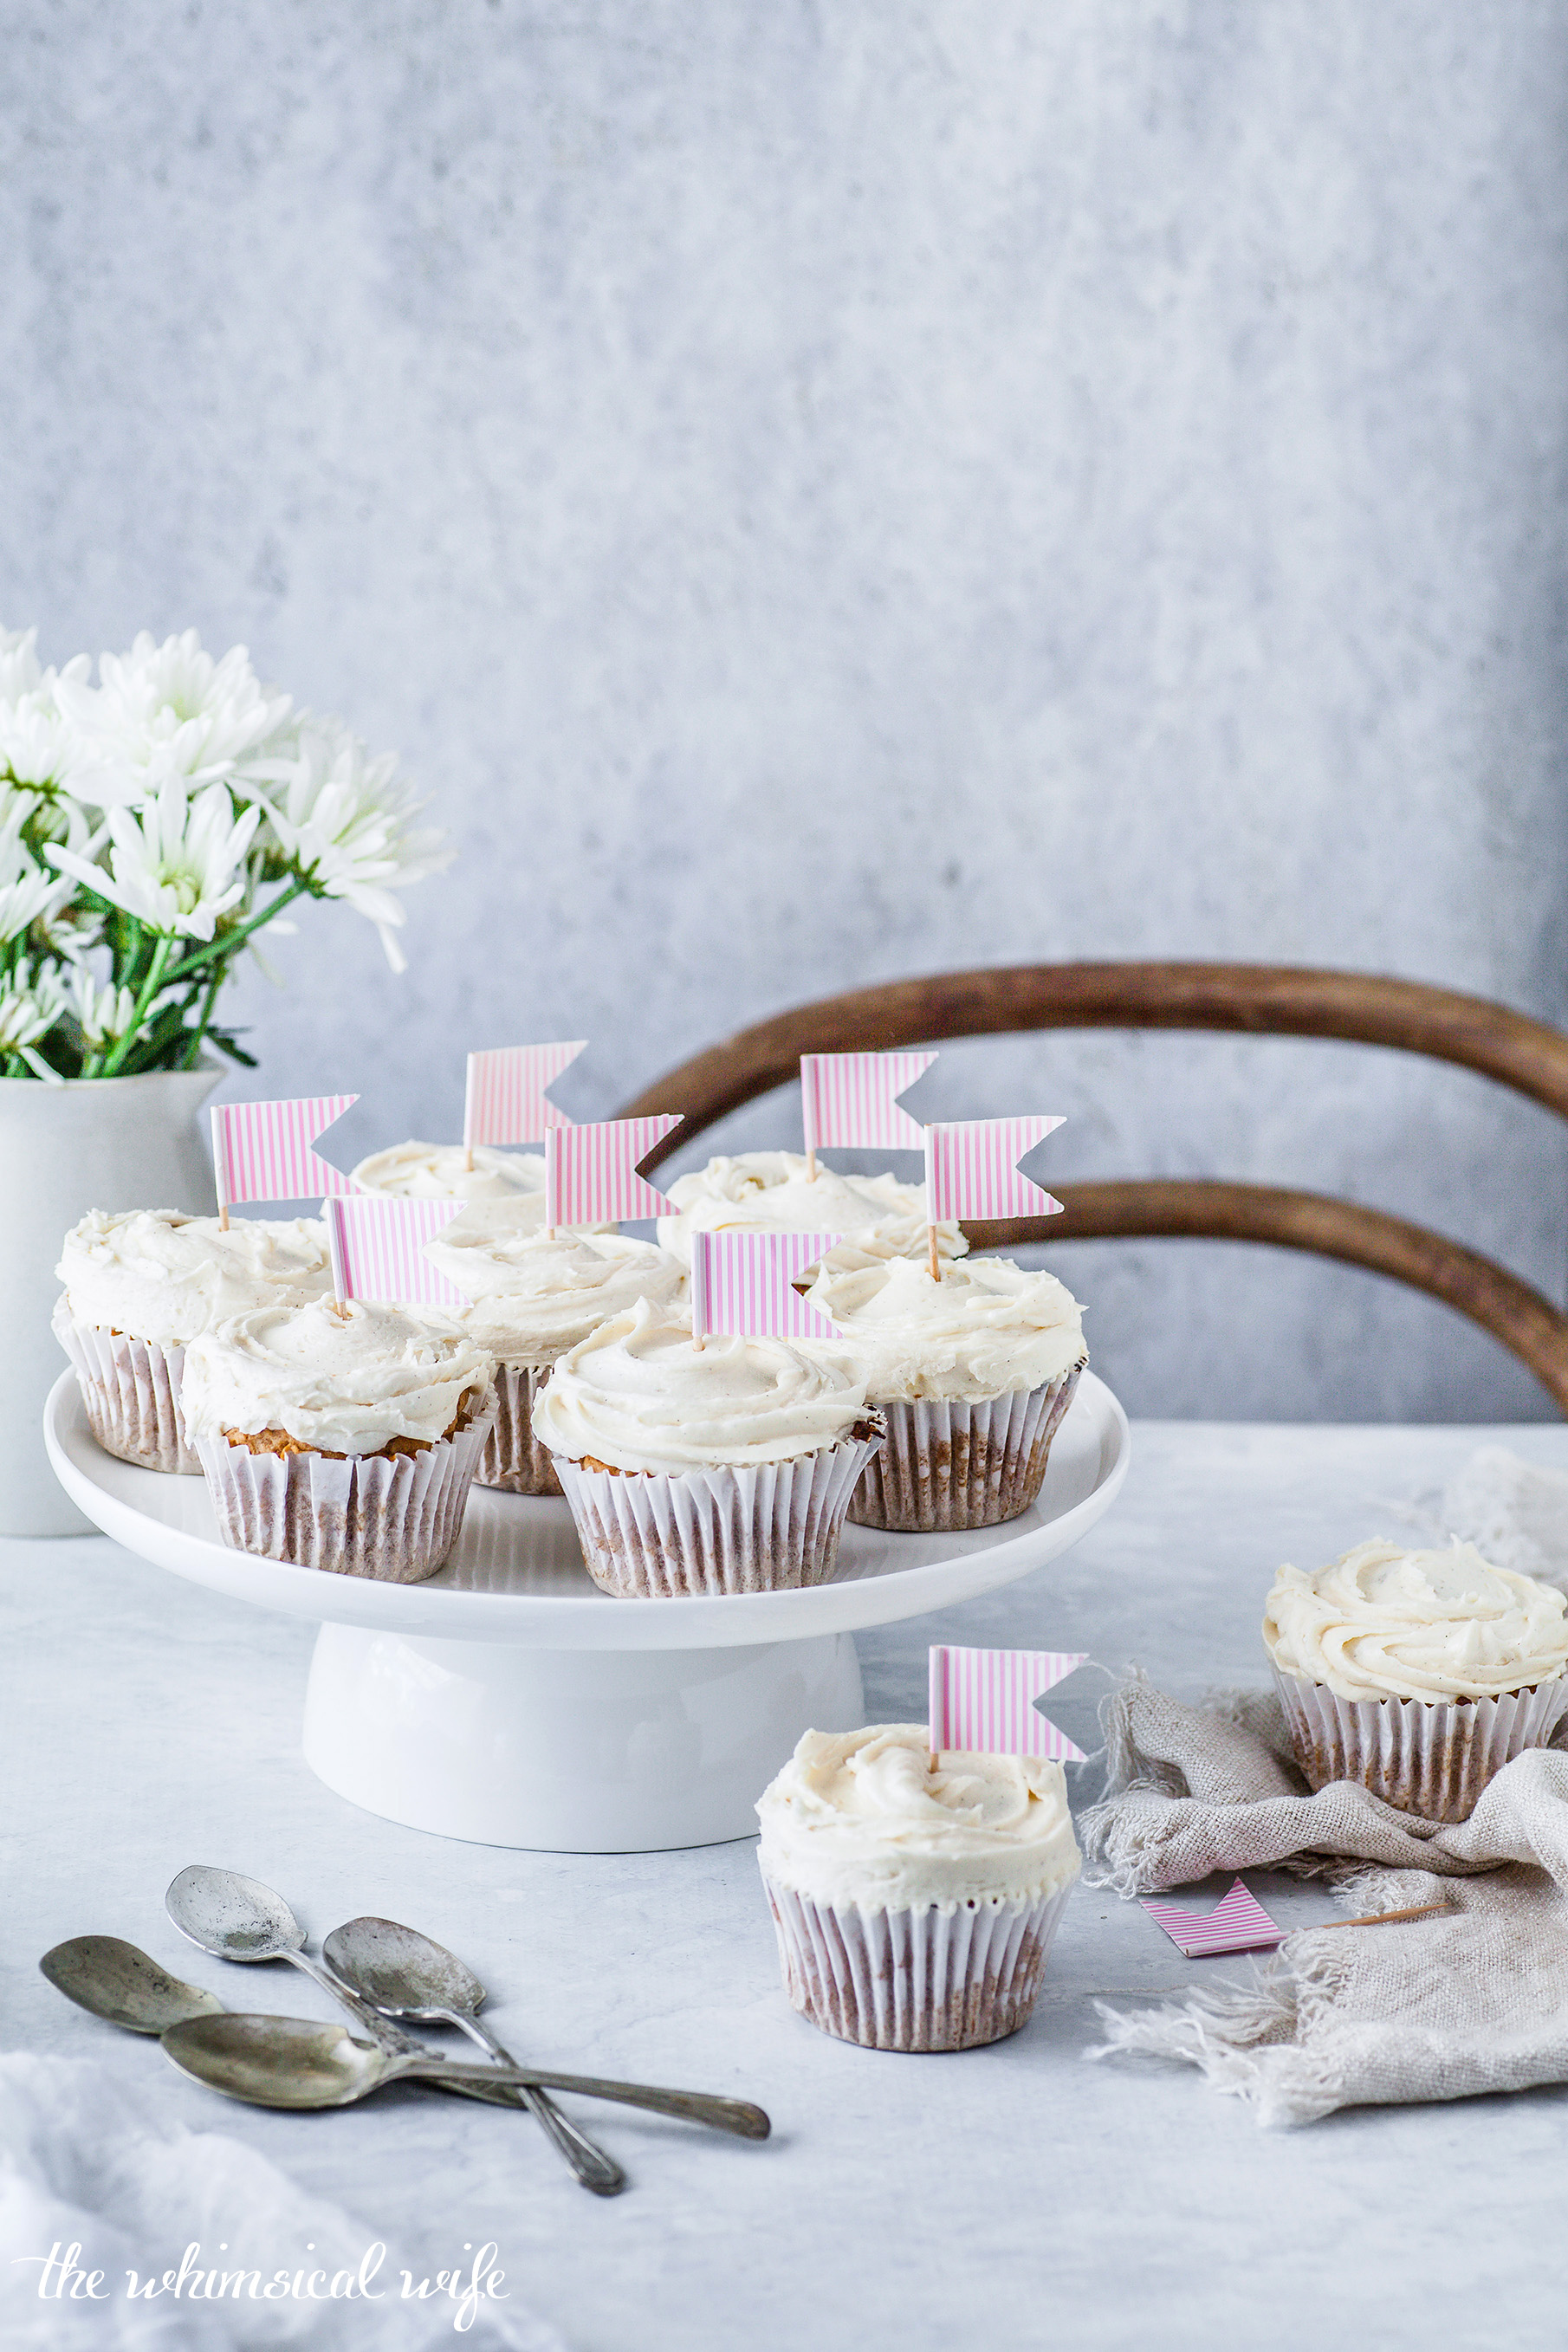 30 Cakes In 30 Days | 7. Chai Cupcakes With Honey Buttercream {GF, DF, Vegan & Nut Free} | The Whimsical Wife